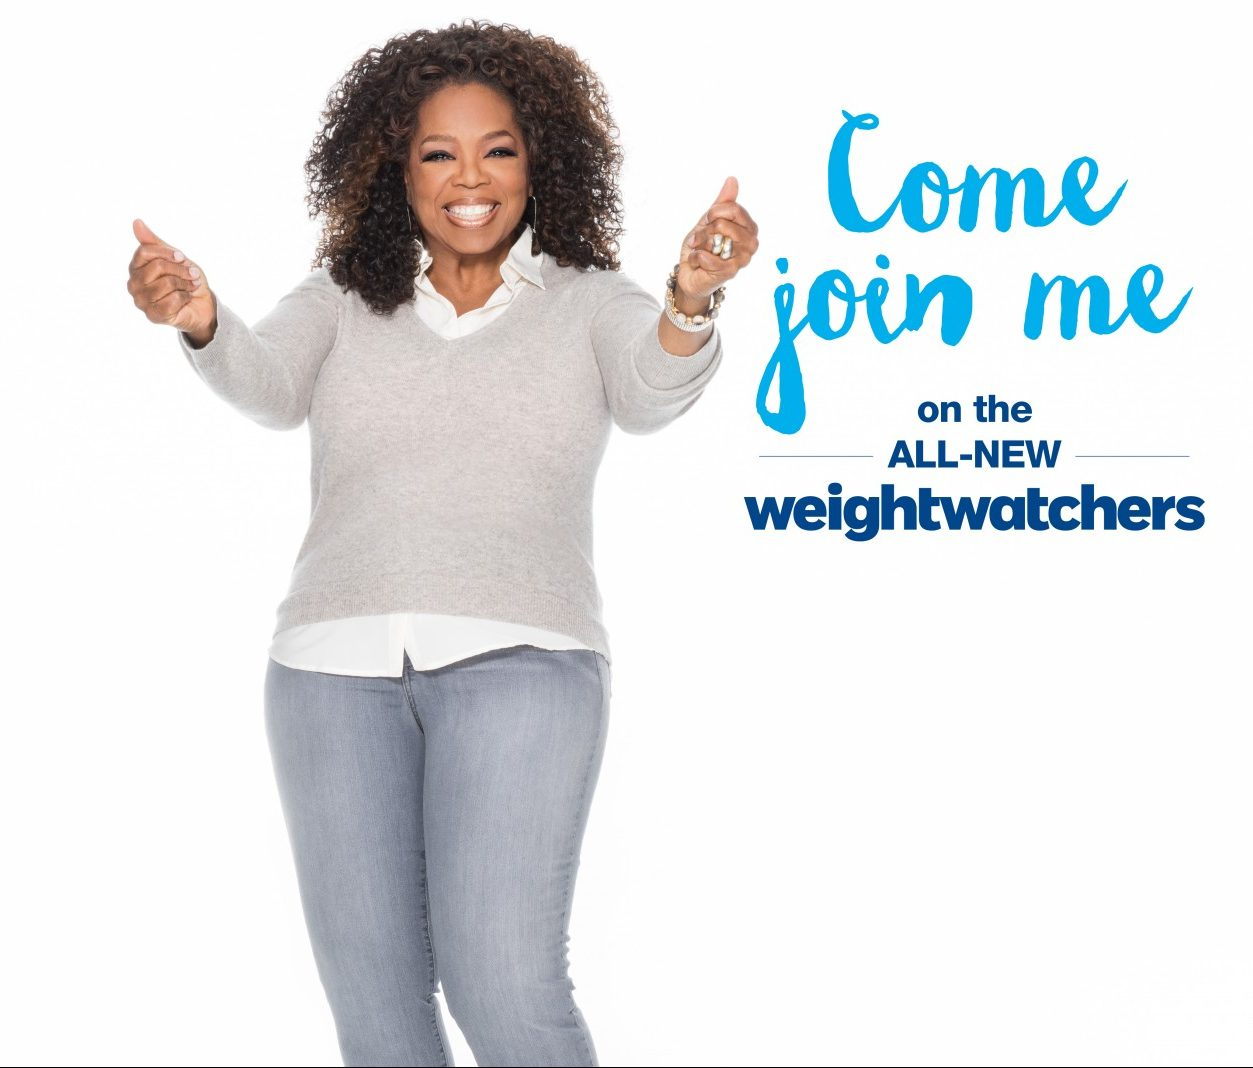 weight watchers online oprah winfrey